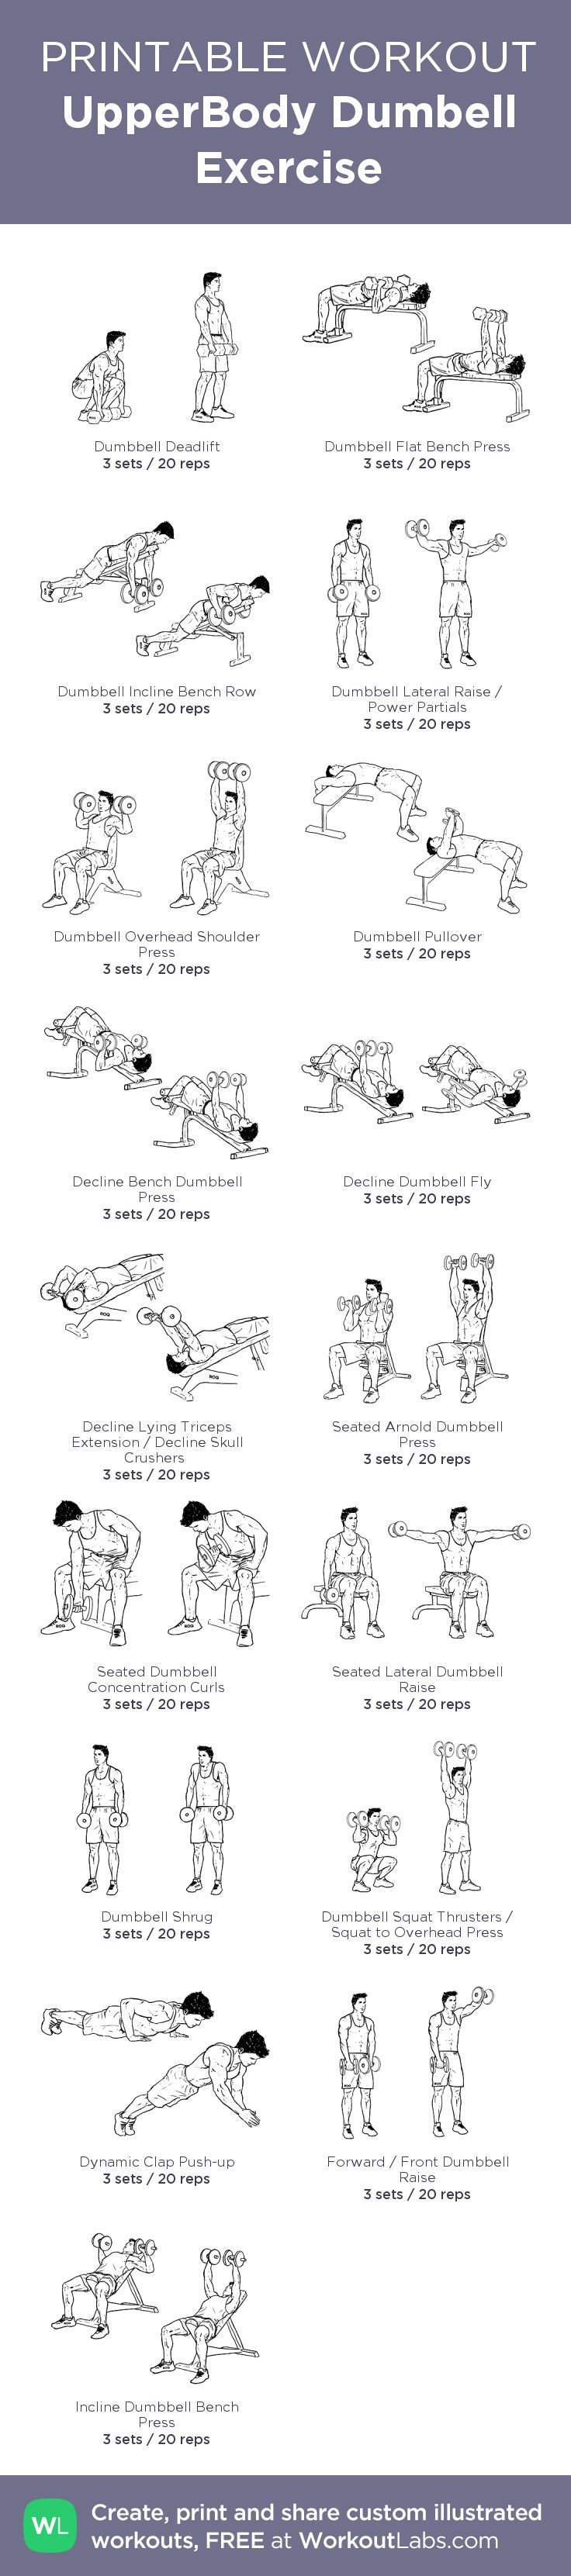 UpperBody Dumbell Exercise:Created at WorkoutLabs.com • Click through to customize and download as a FREE PDF! #customworkout